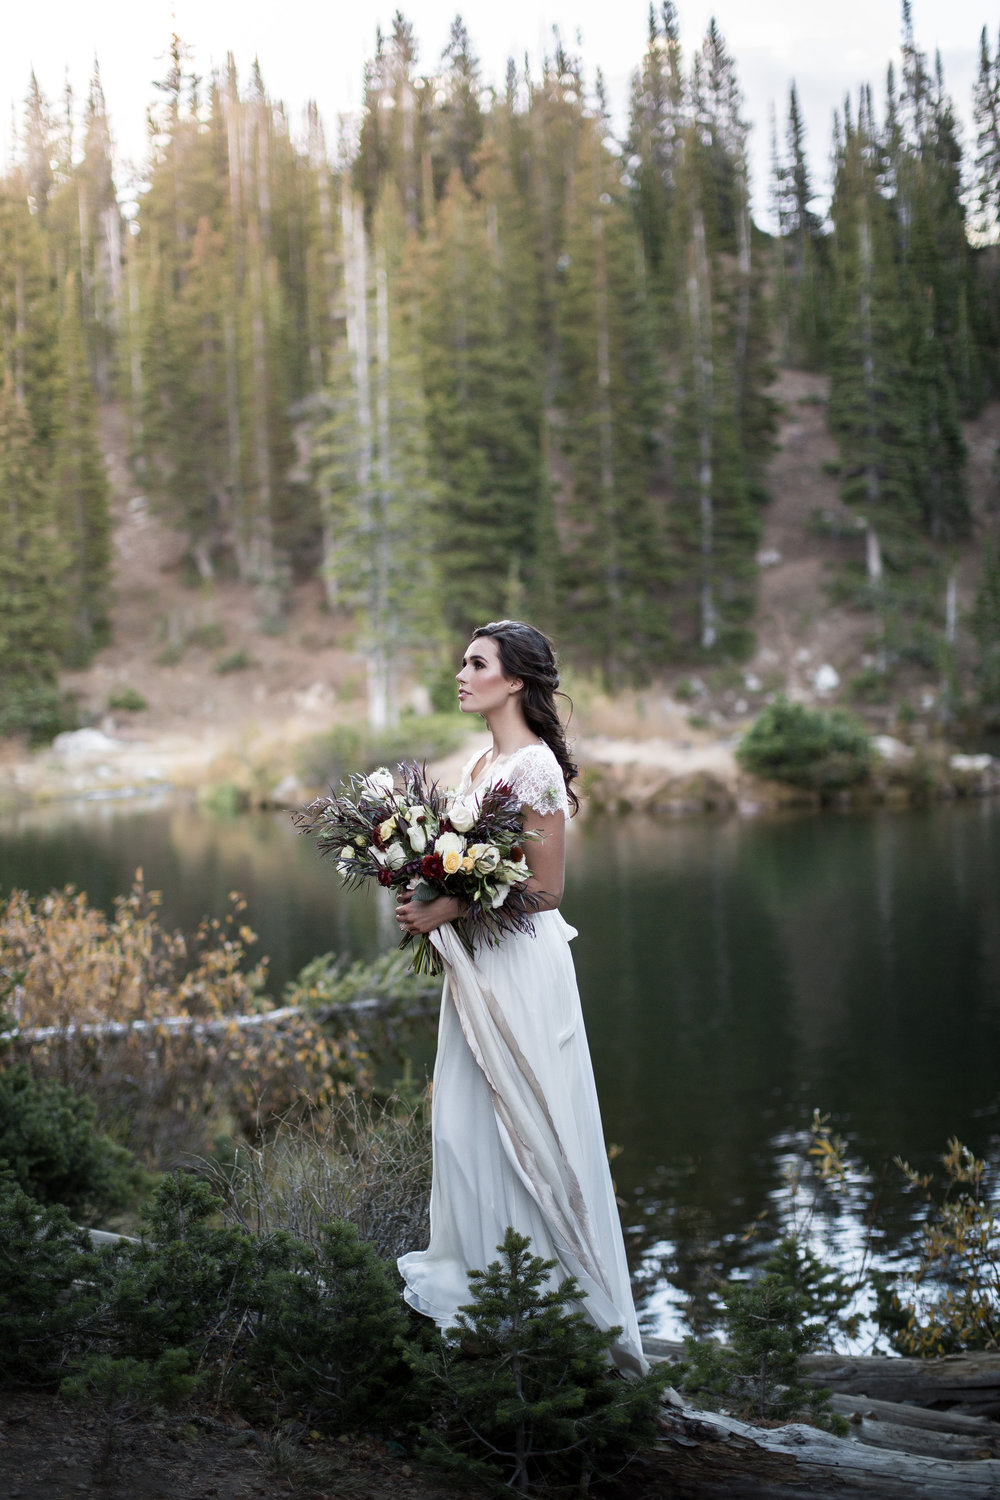 UtahValleyBrideShootTR2016 (47 of 110).jpg